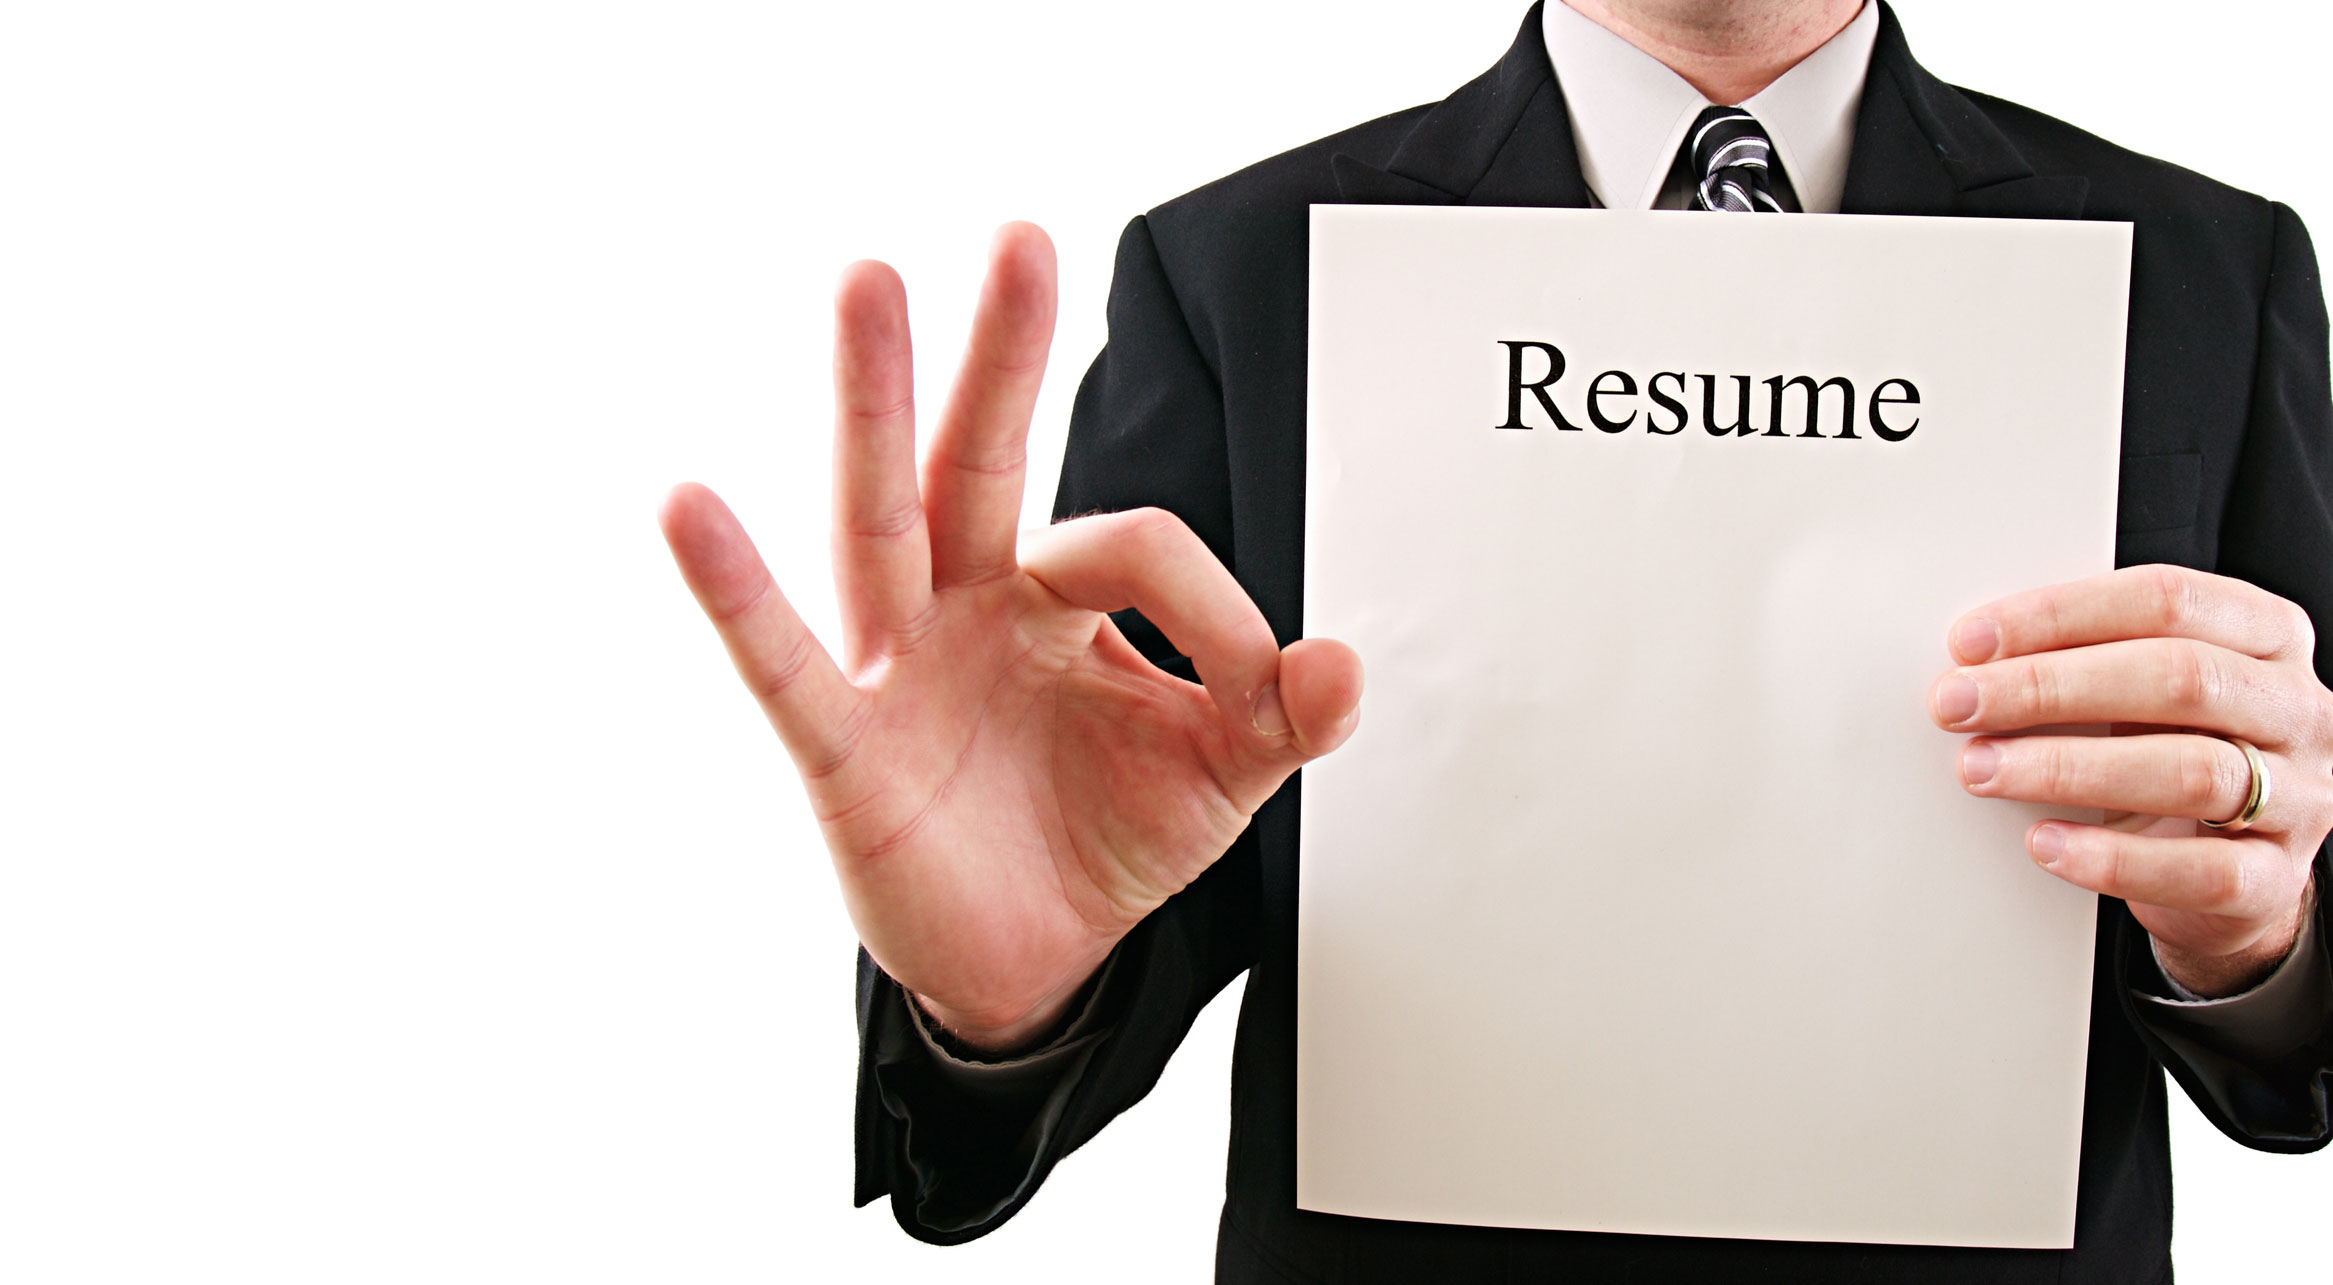 How To Present Your Tech Skills In A Resume That Will Get You A Job